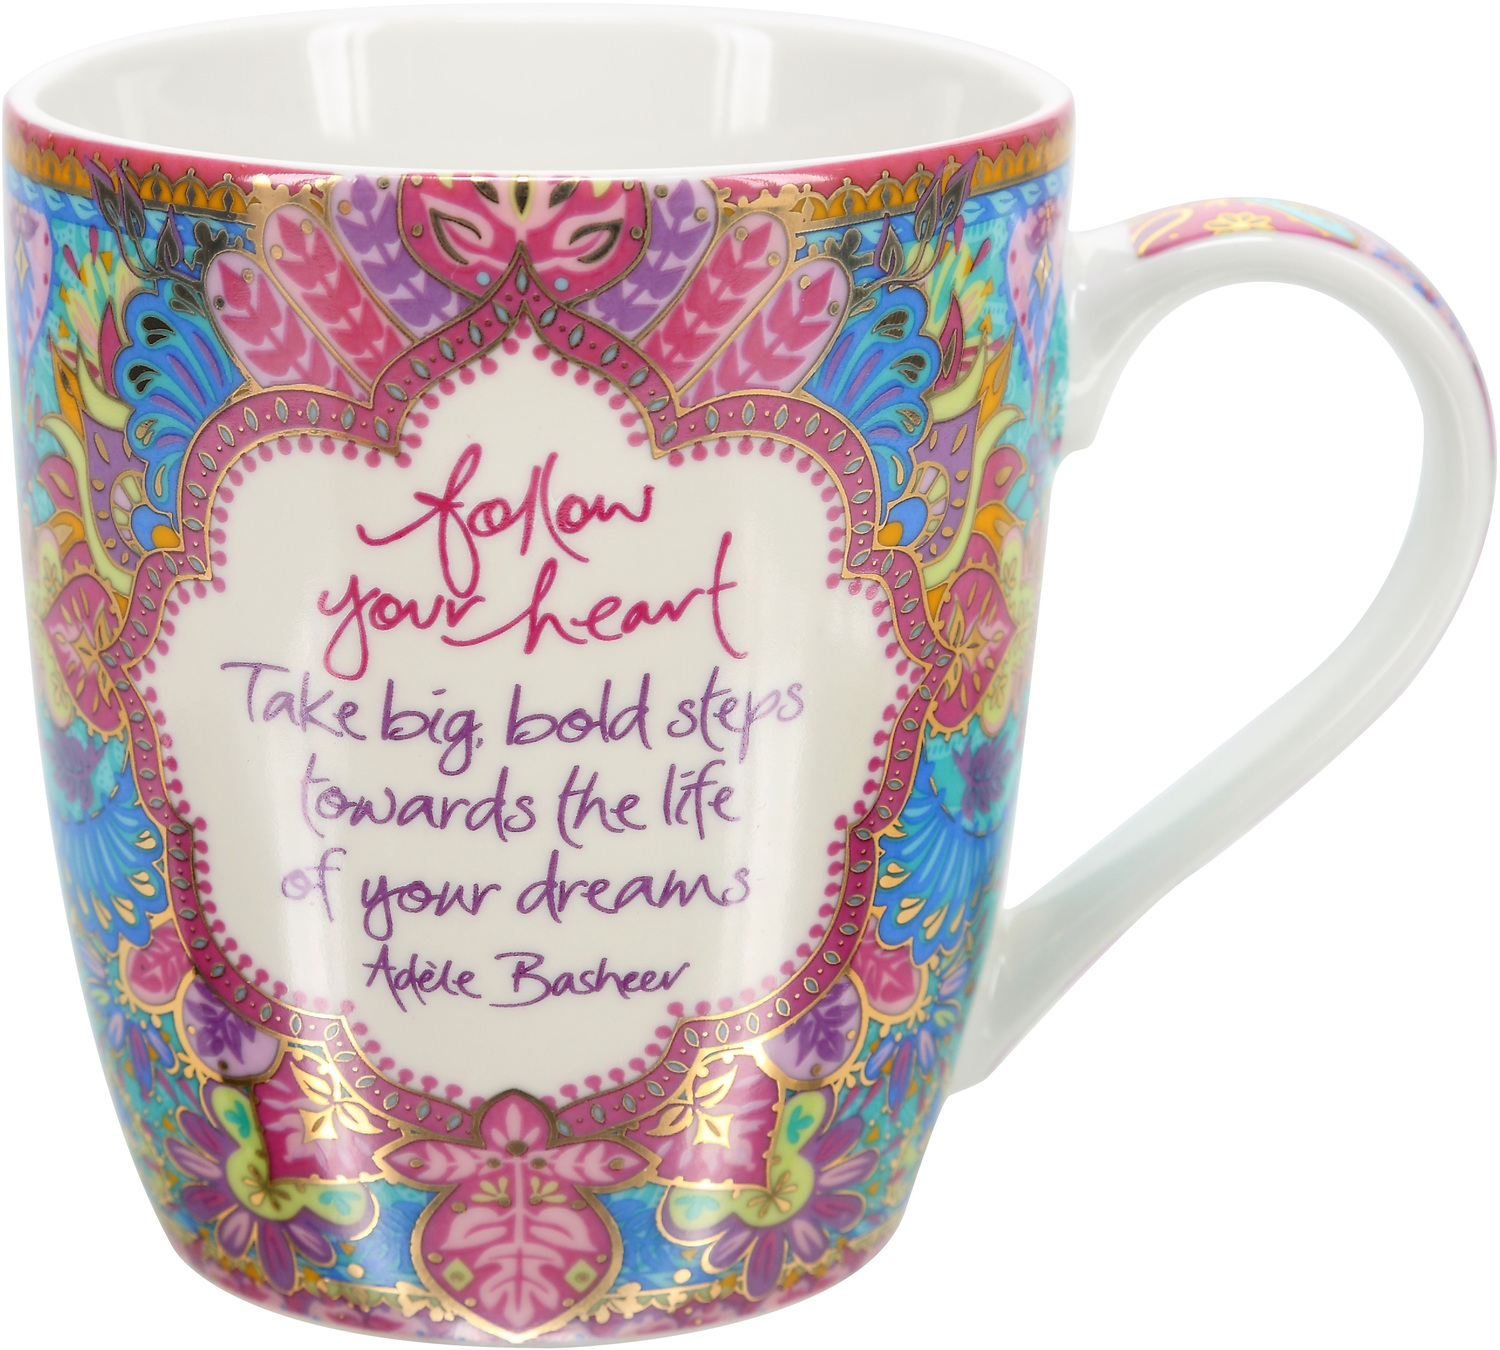 Follow Your Heart by Intrinsic - Follow Your Heart - 12 oz Cup with Gift Box